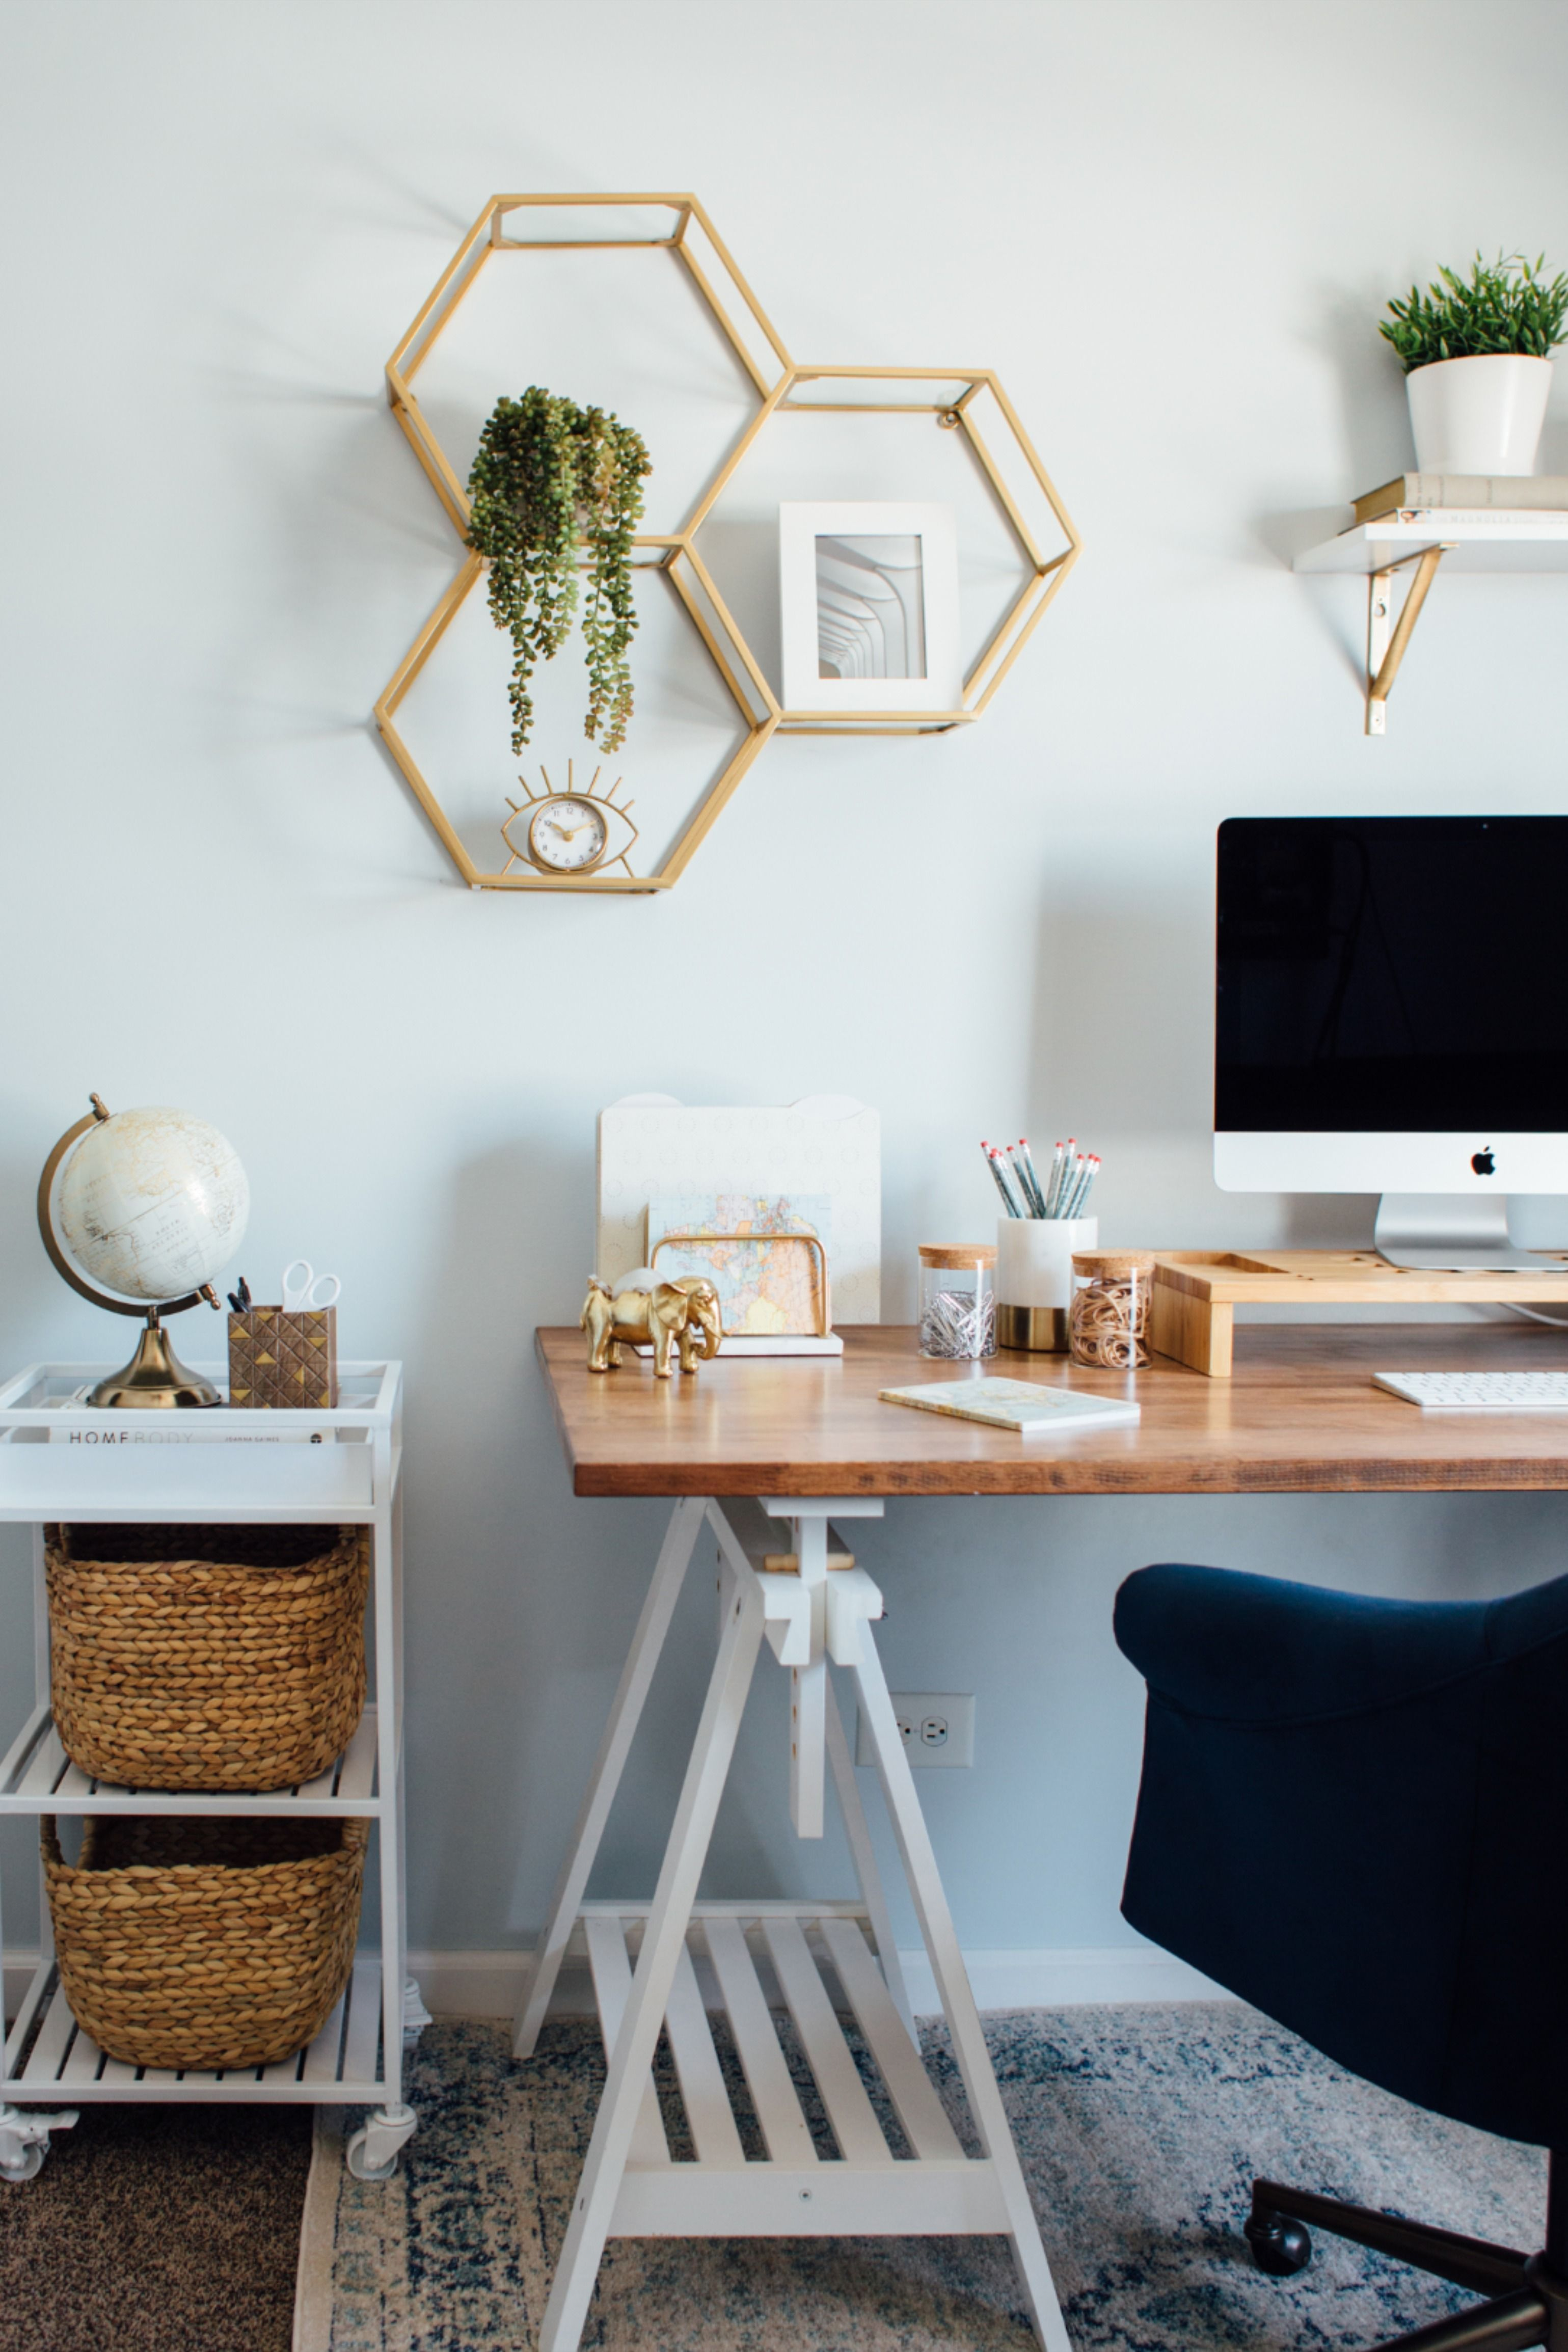 Spring Cleaning Office Orderhome Decorideas Tipsinspiration Cozy Home Office Home Office Design Home Office Space